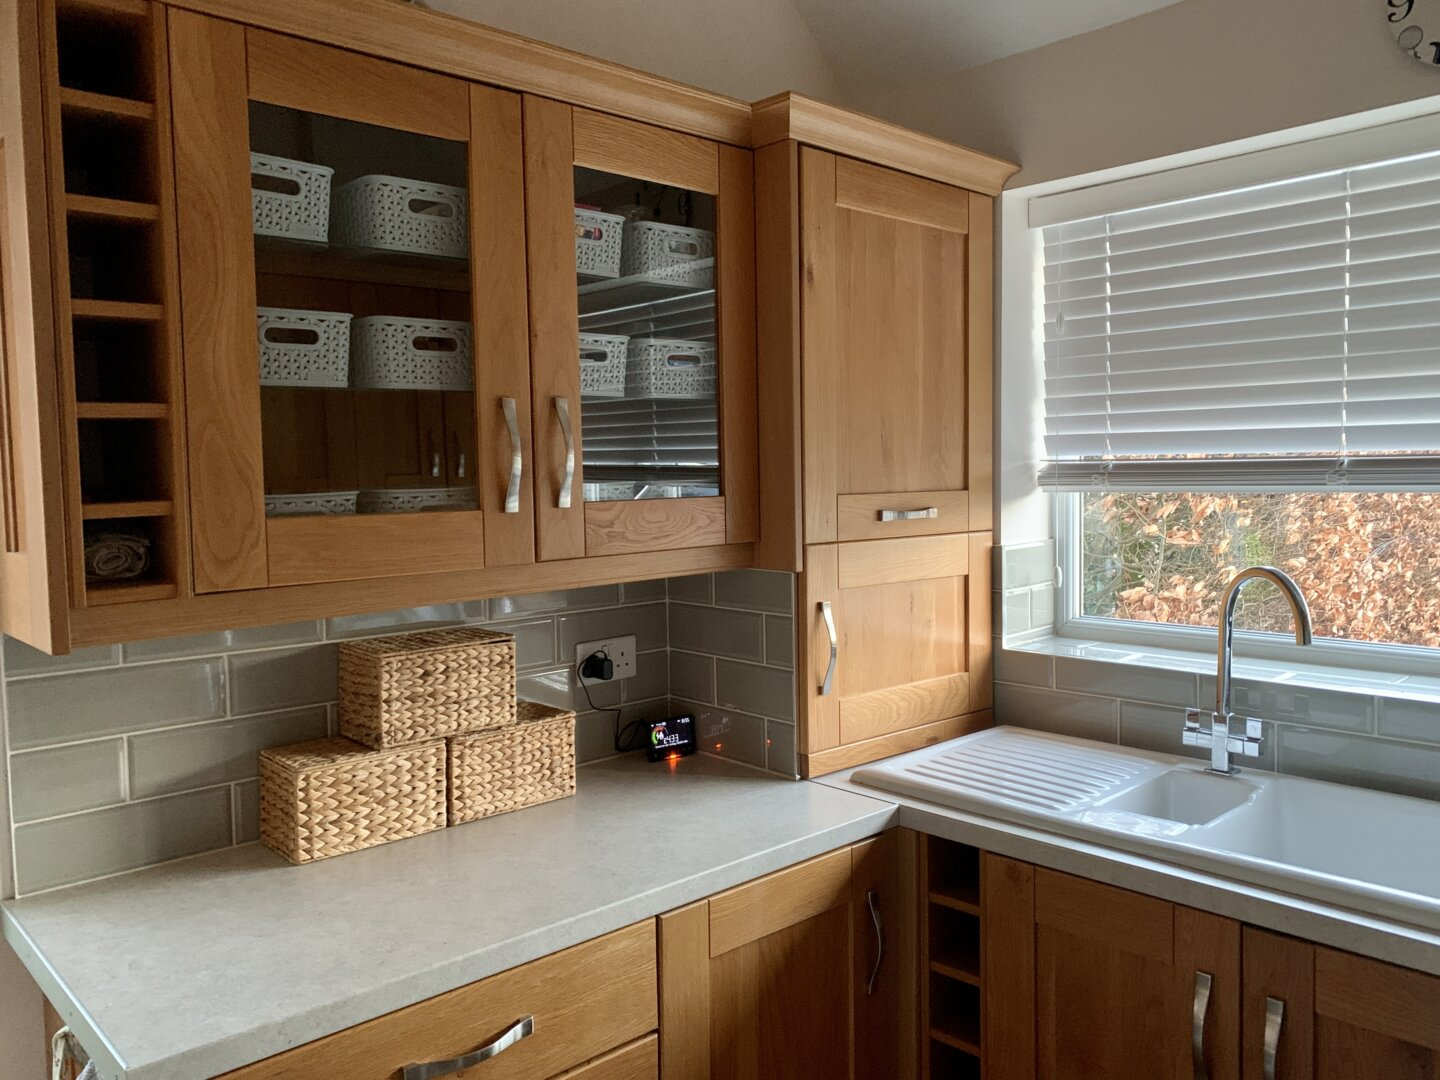 A freshly organised utility room with a double glass-fronted wall cupboard, with 12 small grey baskets inside. Three empty wicker baskets sit on a a plain grey worktop underneath, in front of sage green metro tiles. To the right is a ceramic double sink with a window above it.